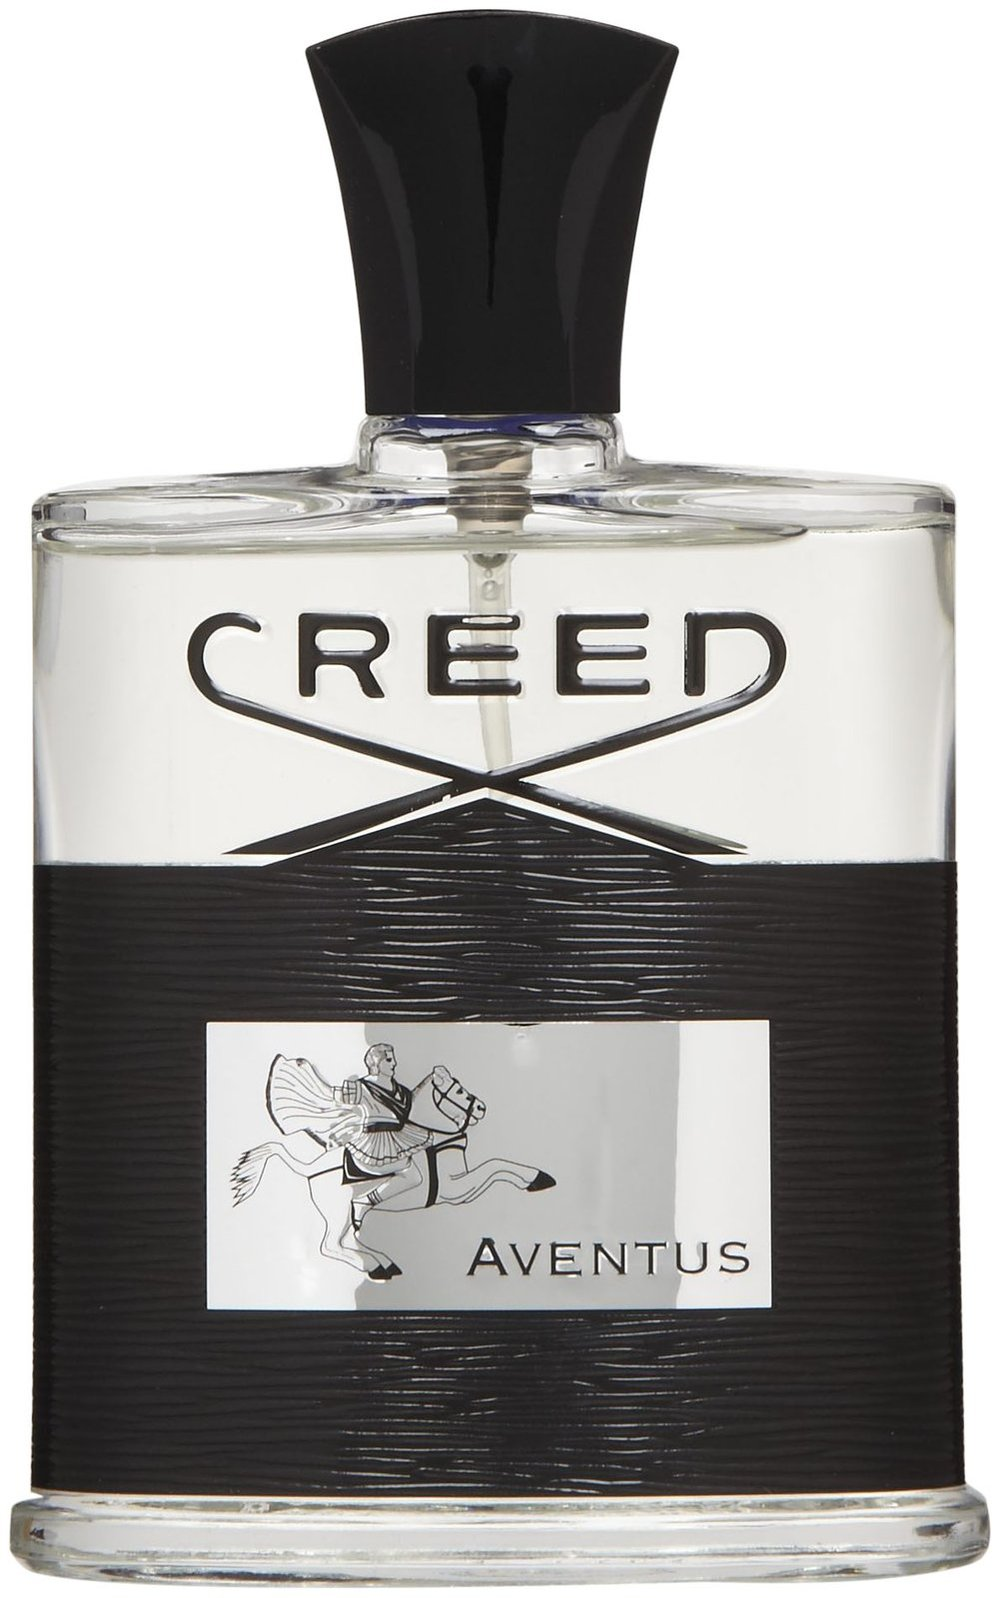 Creed 'Aventus' Fragrance, $190-$380